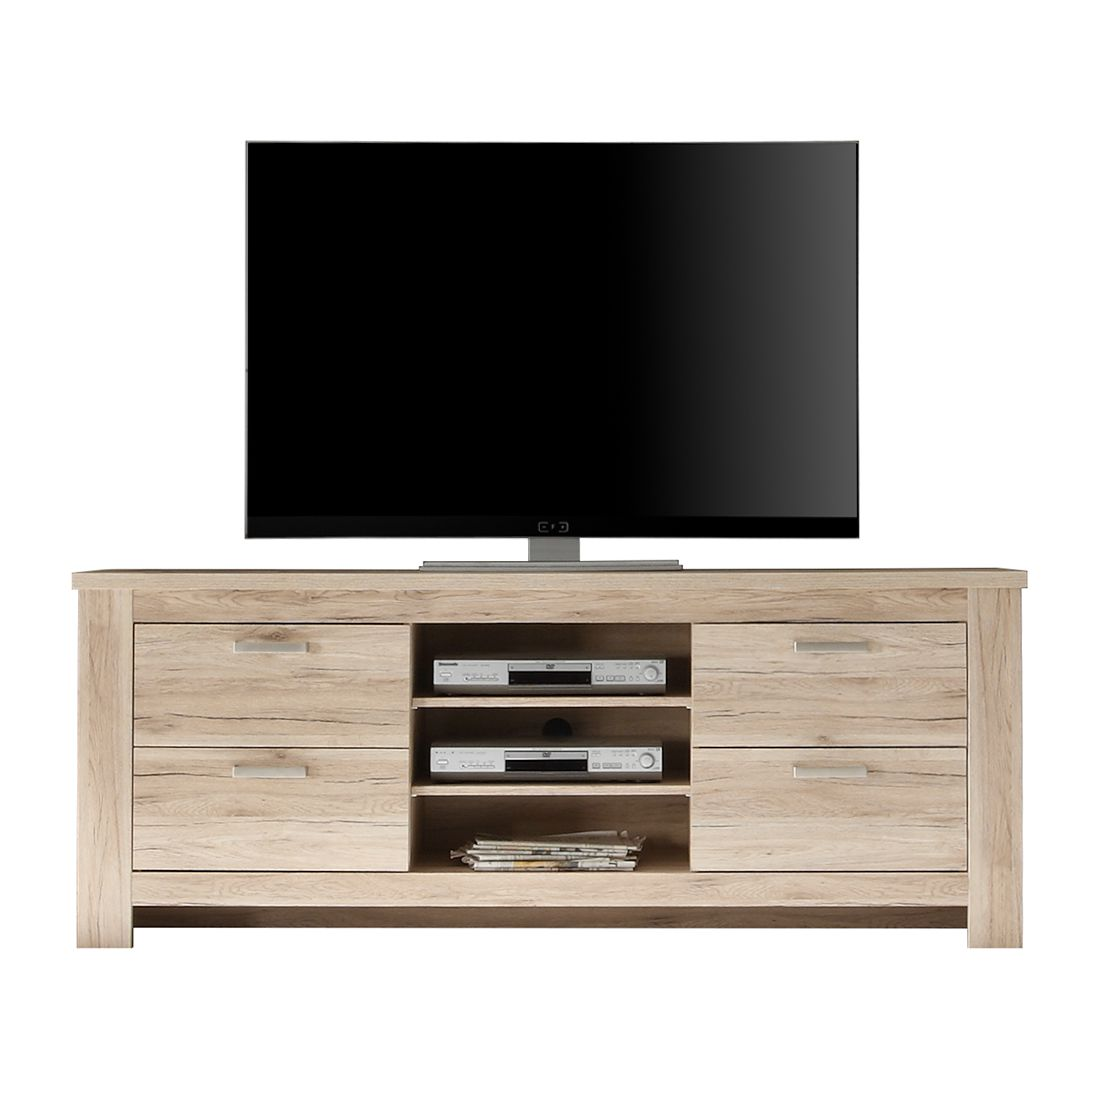 tv lowboard rostock iii eiche sanremo sand dekor kerkhoff kaufen. Black Bedroom Furniture Sets. Home Design Ideas